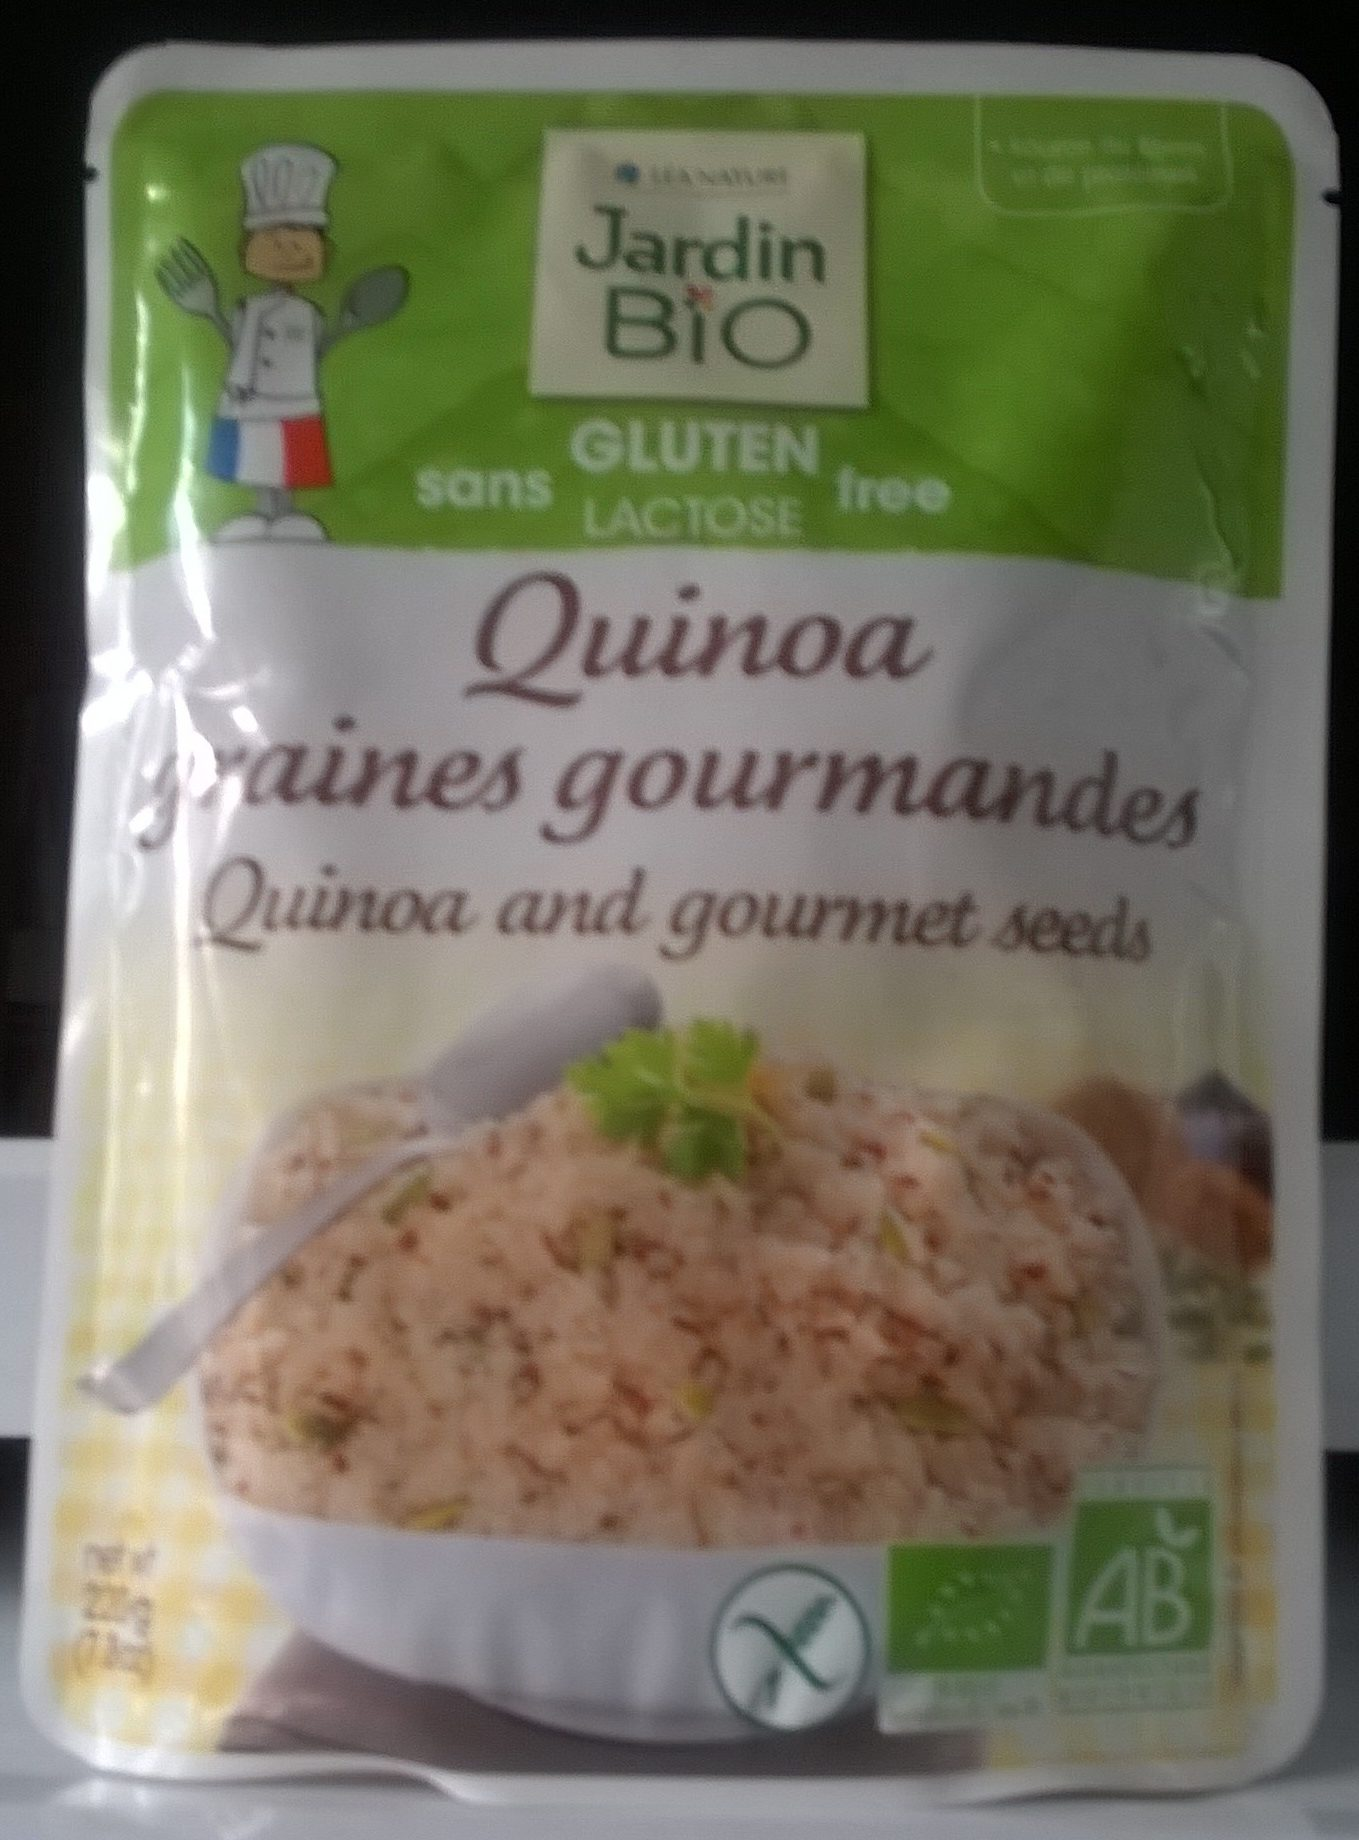 Quinoa Graines Gourmandes - Product